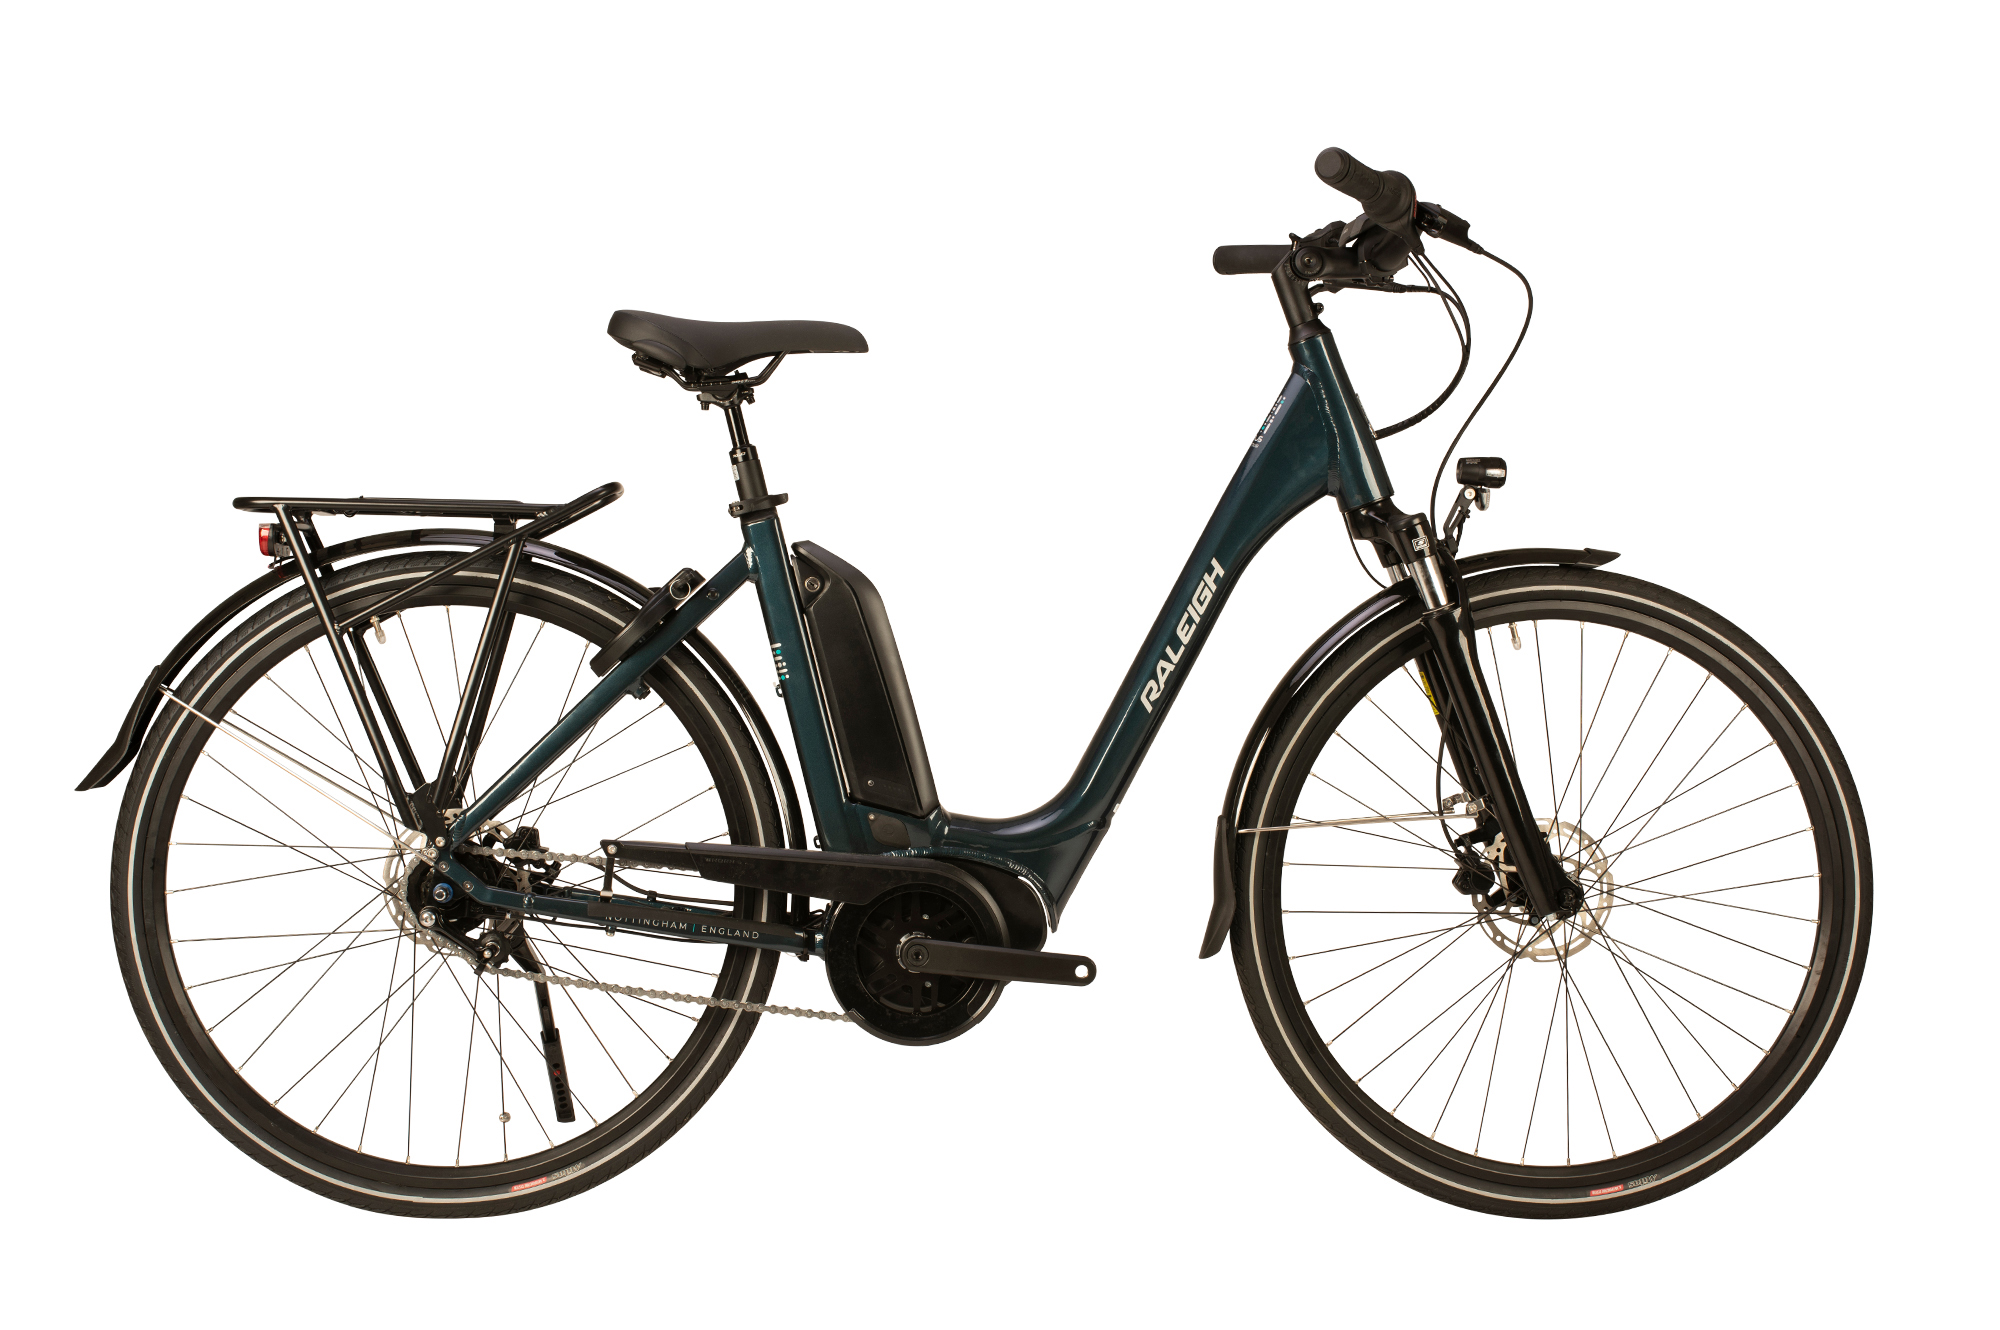 Raleigh Motus Grand Tour low step electric bike